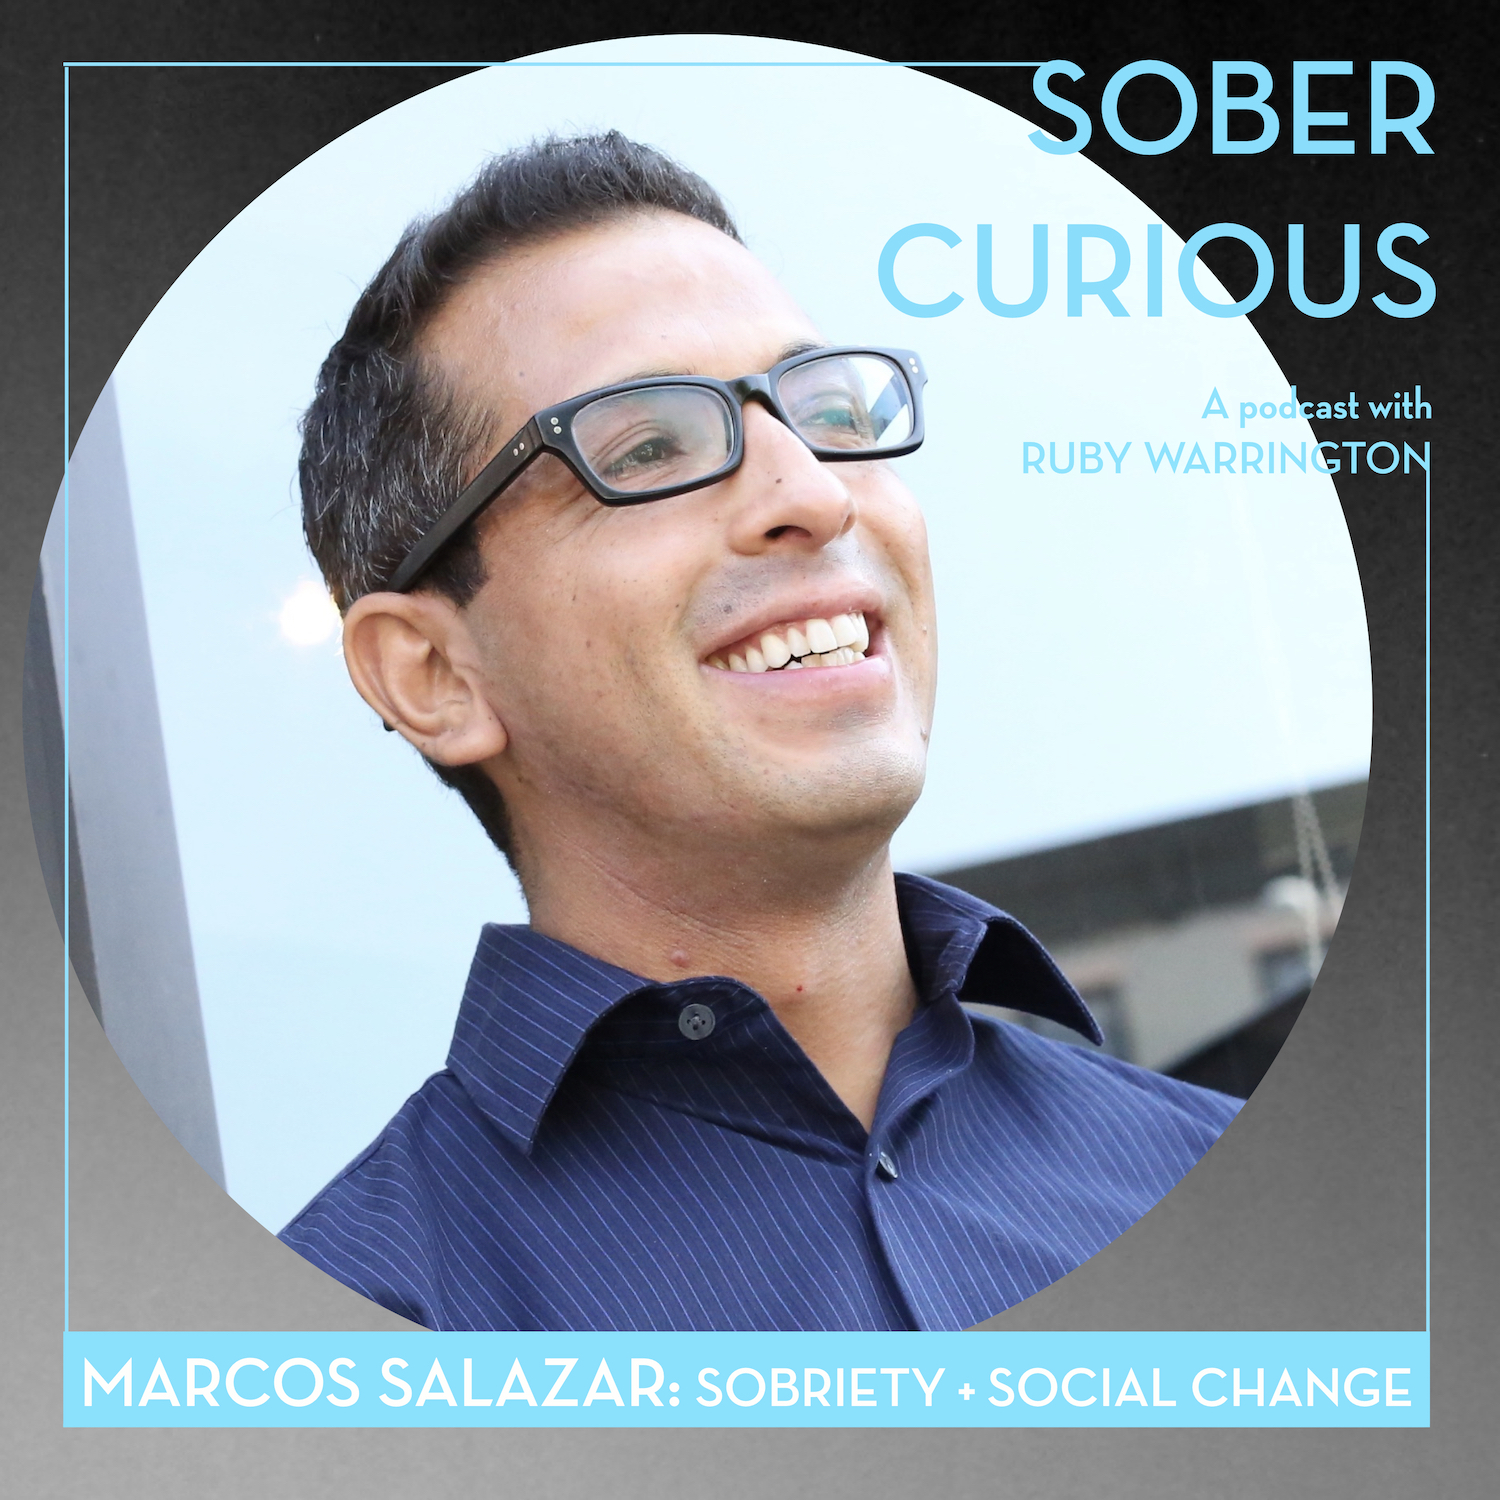 Marcos Salazar For All Drinks Sober Curious Podcast Dry January Ruby Warrington